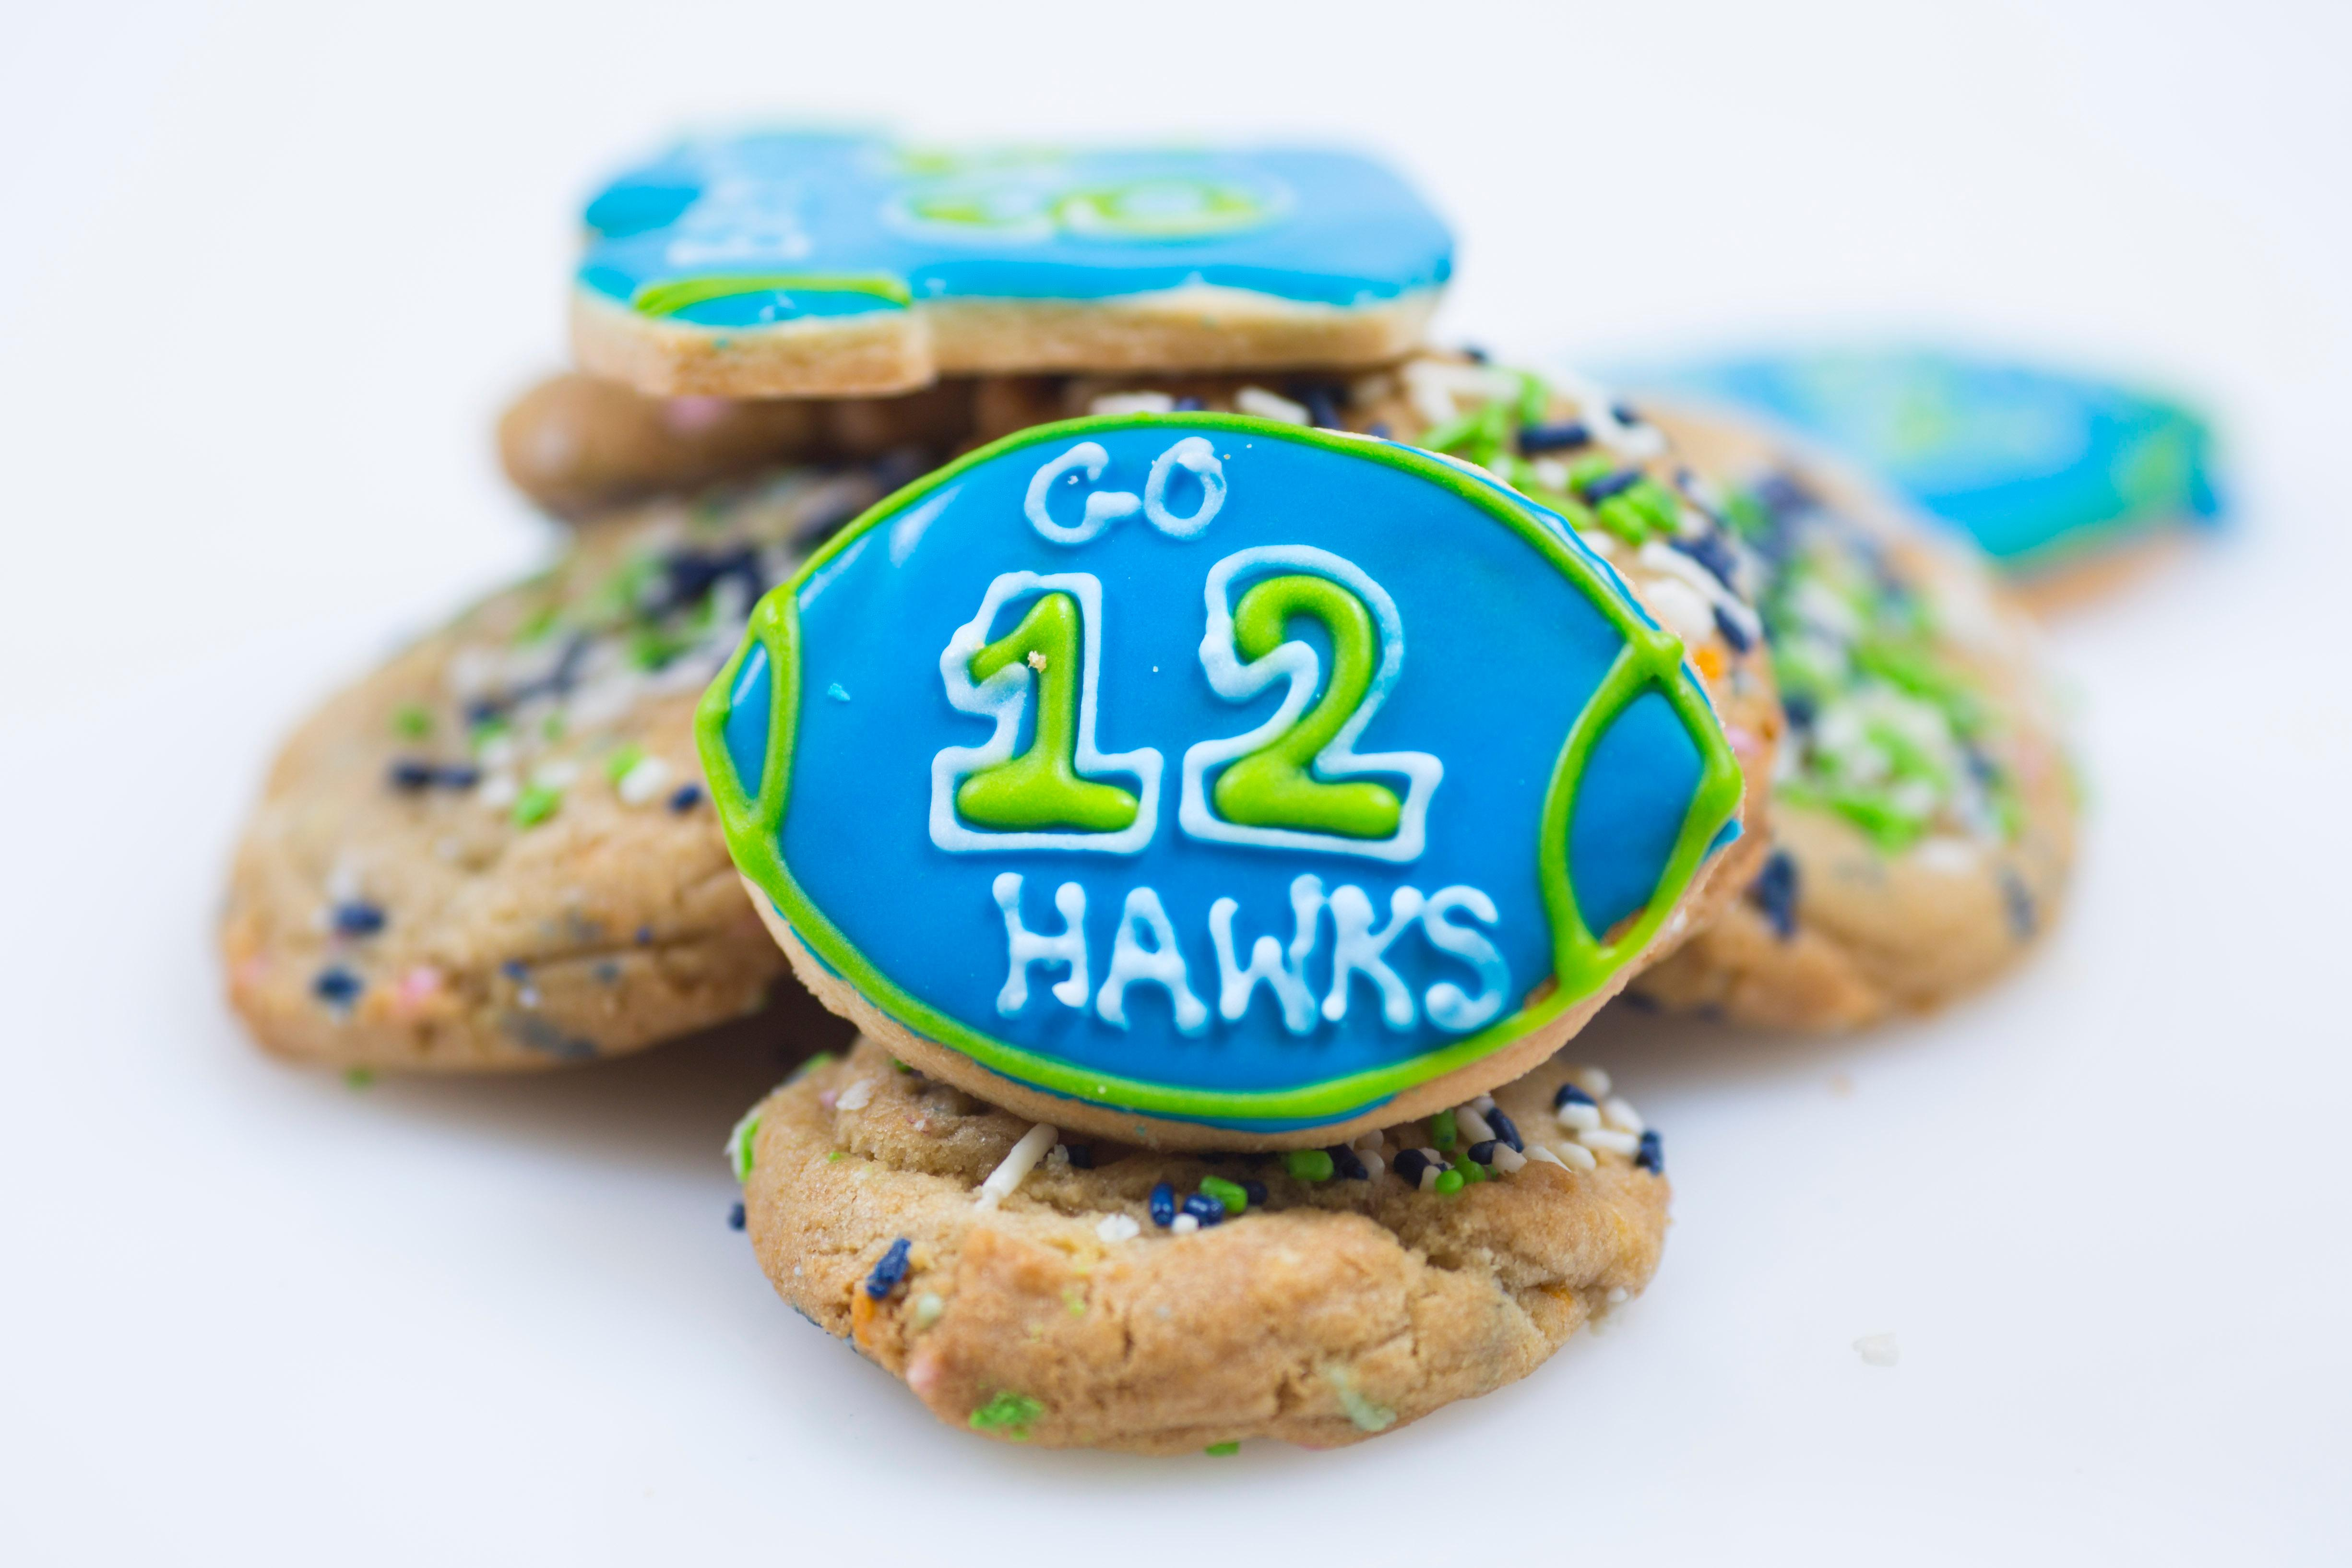 If cupcakes and cheesecake aren't exactly your thing, be sure to check out Hello Robin Cookies. Each season they make Seahawks-themed frosted sugar cookies, as well as blue and green, Seahawks Birthday Cake Cookies. This small cookie shop is located at: 522 19th Ave E, Seattle. (Sy Bean / Seattle Refined)